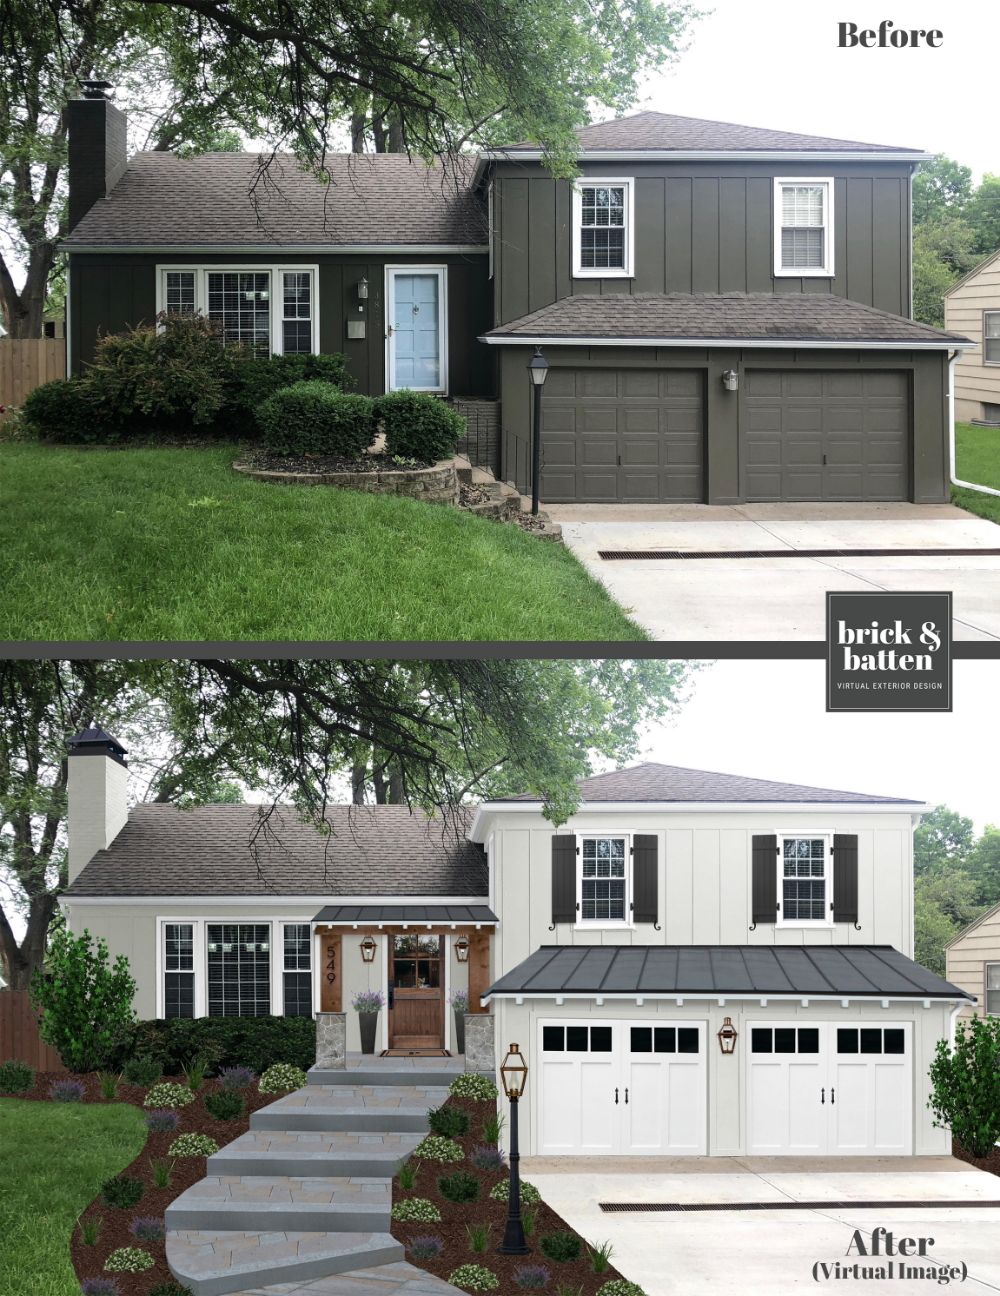 Questions Answered About Home Exterior Siding | Blog | brick&batten